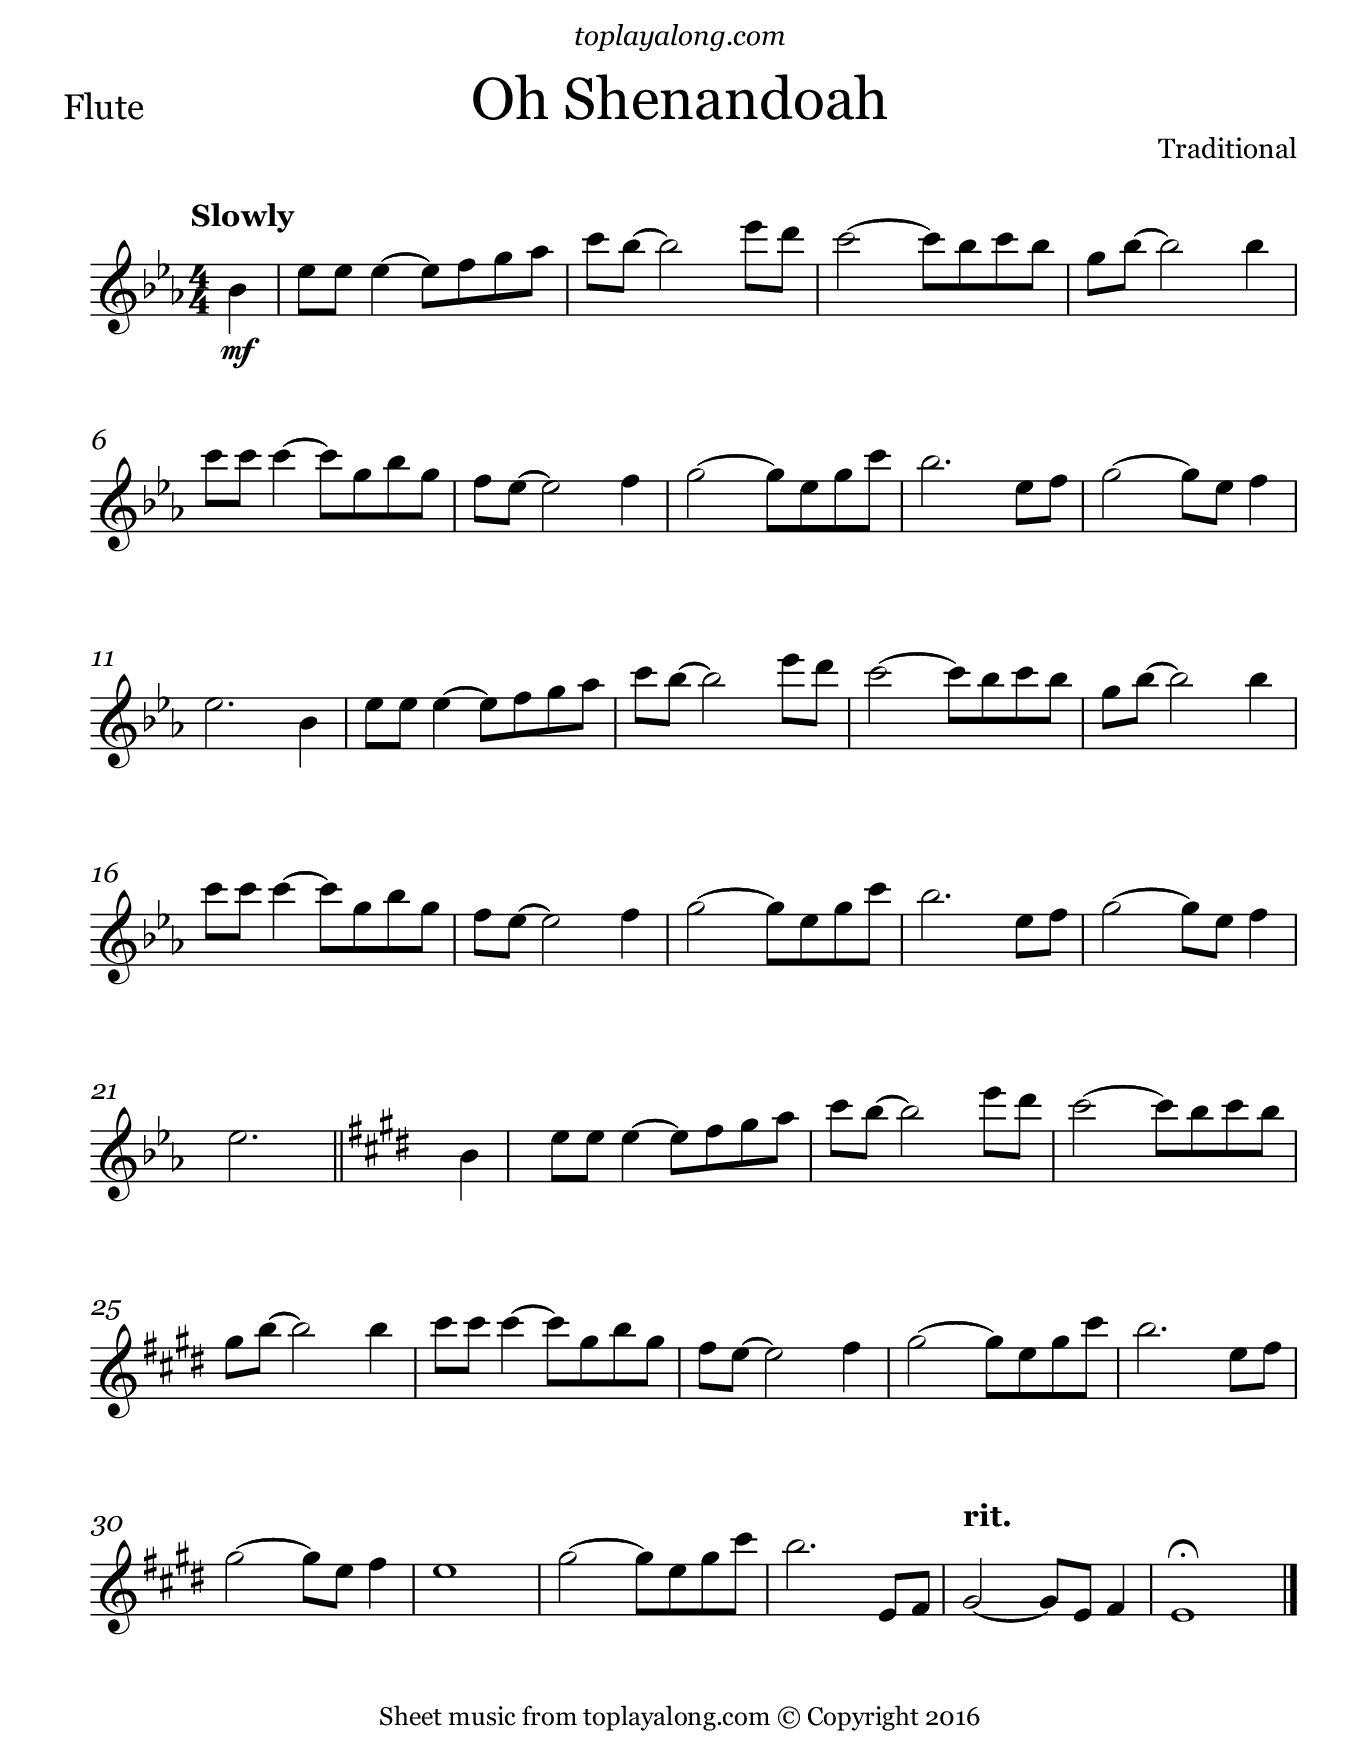 Oh Shenandoah. Sheet music for Flute, page 1.